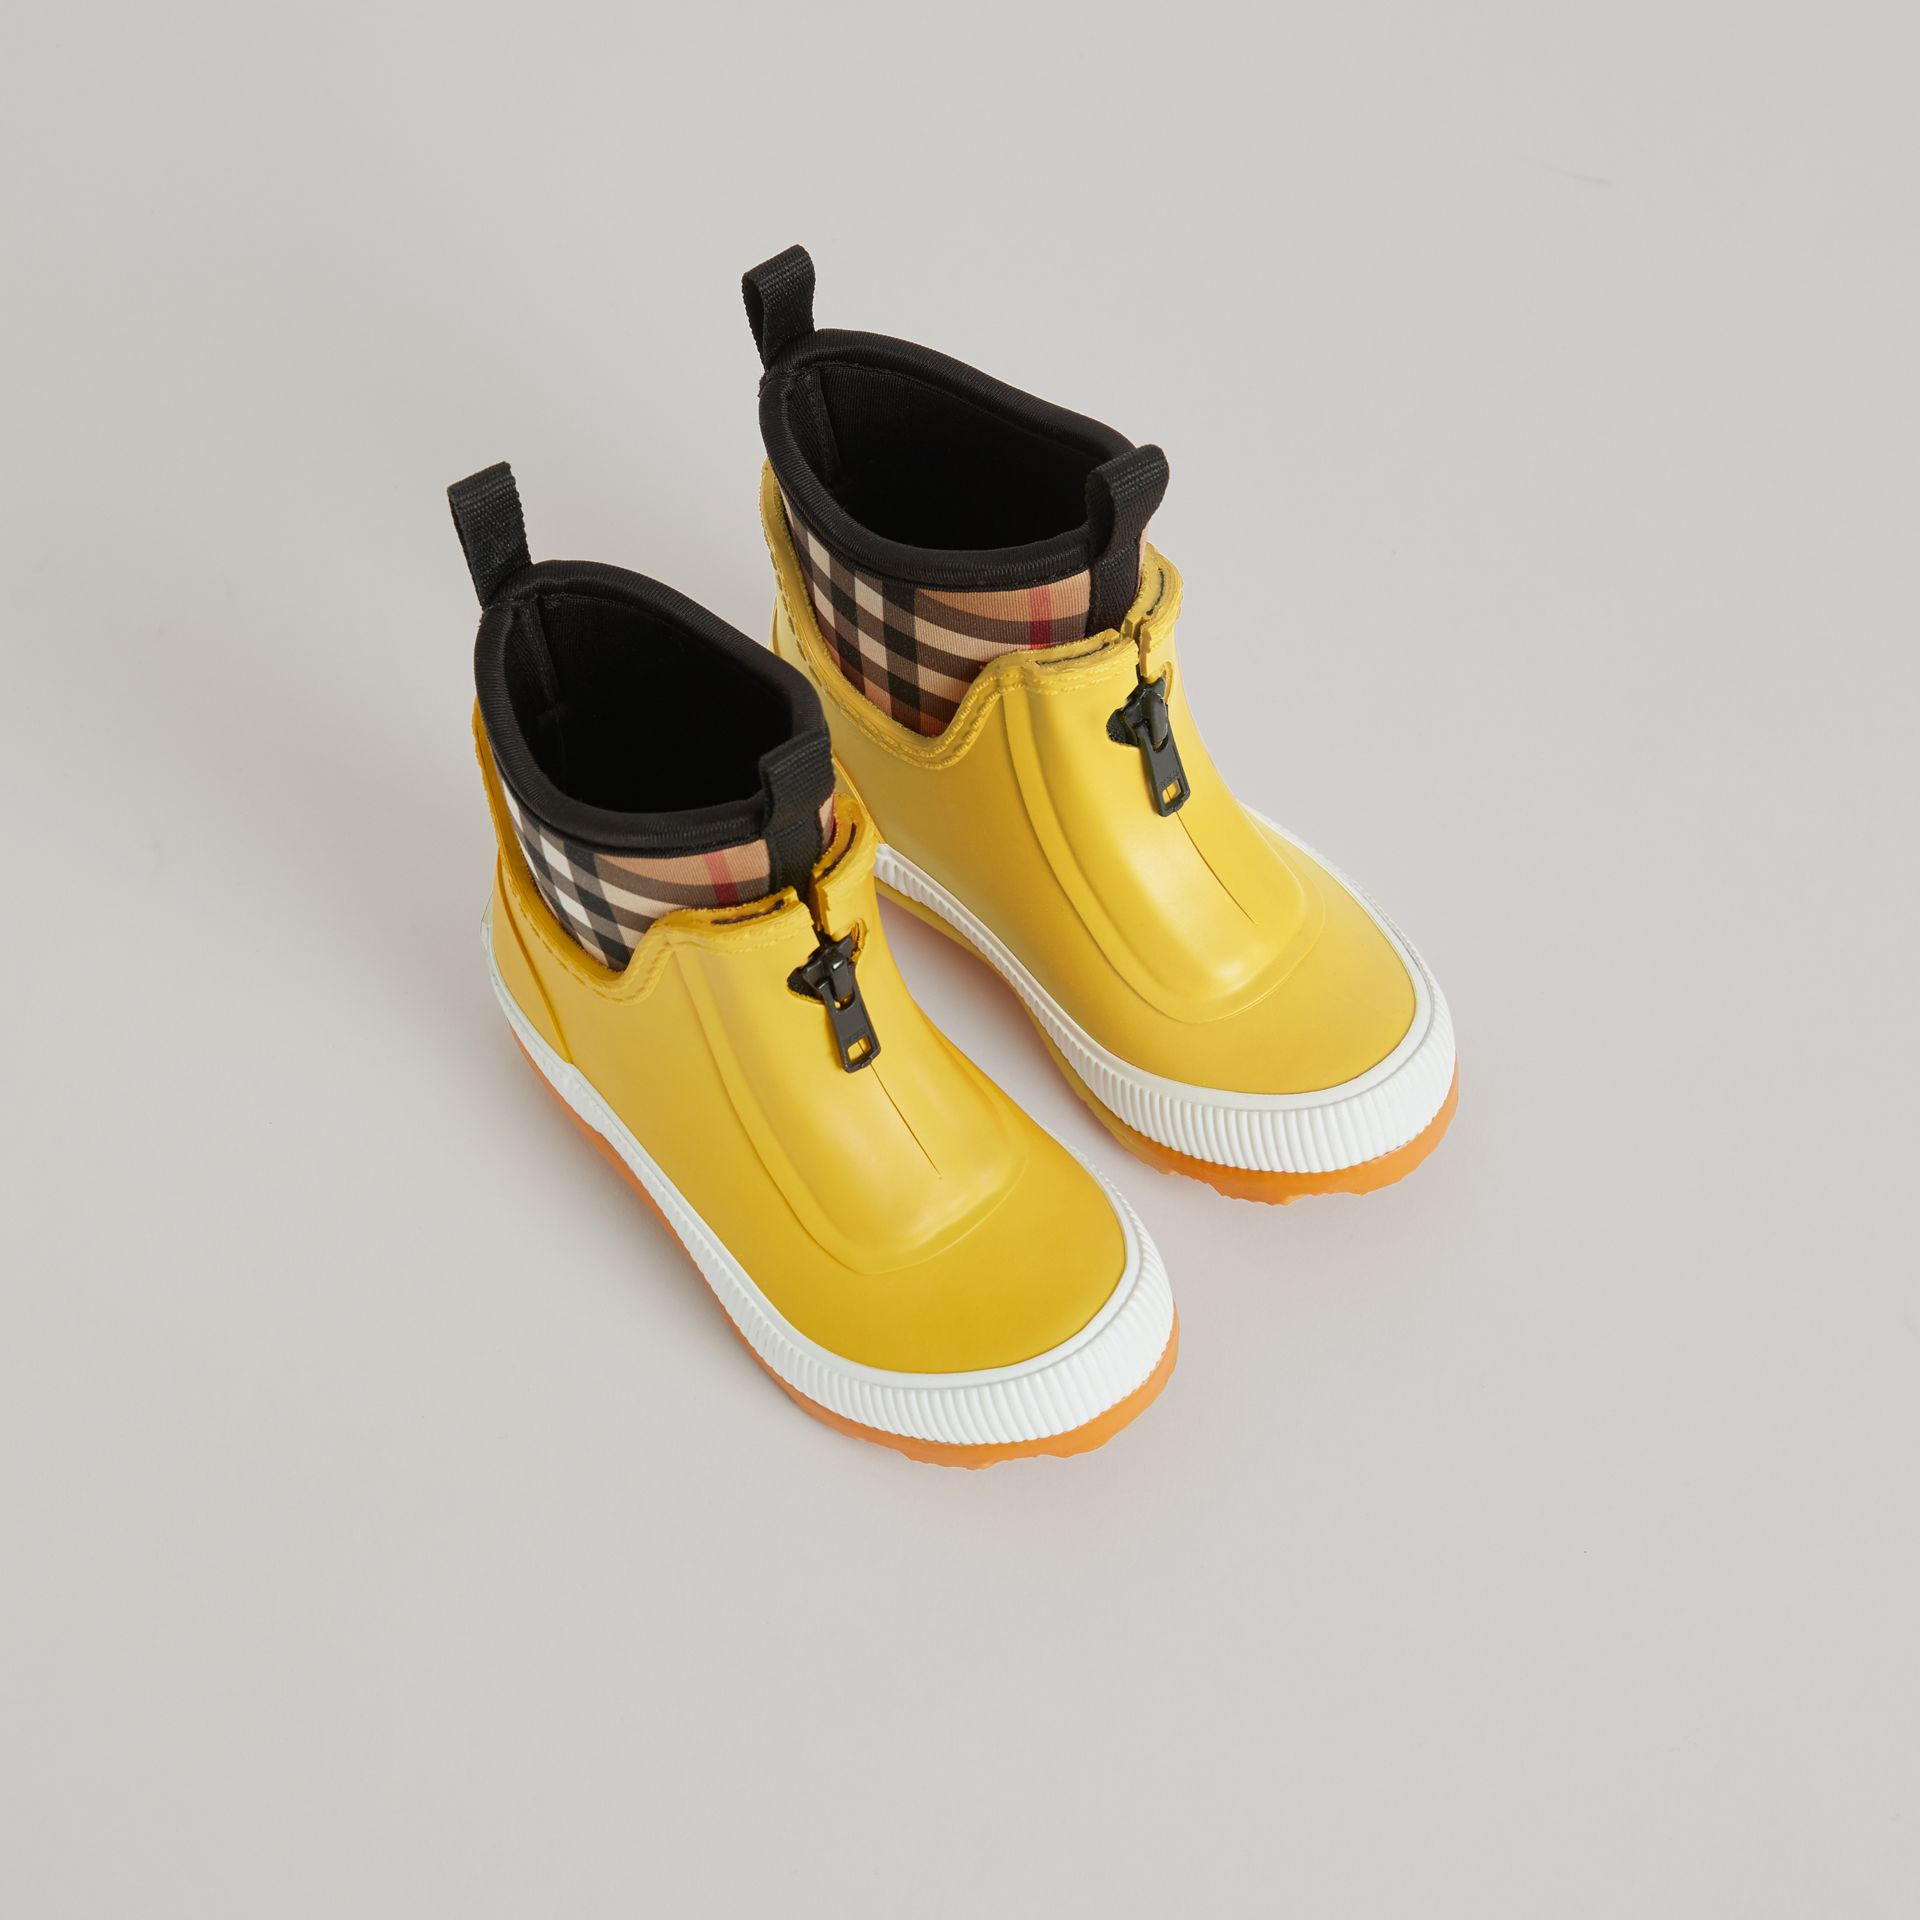 Vintage Check Neoprene and Rubber Rain Boots in Vibrant Lemon | Burberry United States - gallery image 0